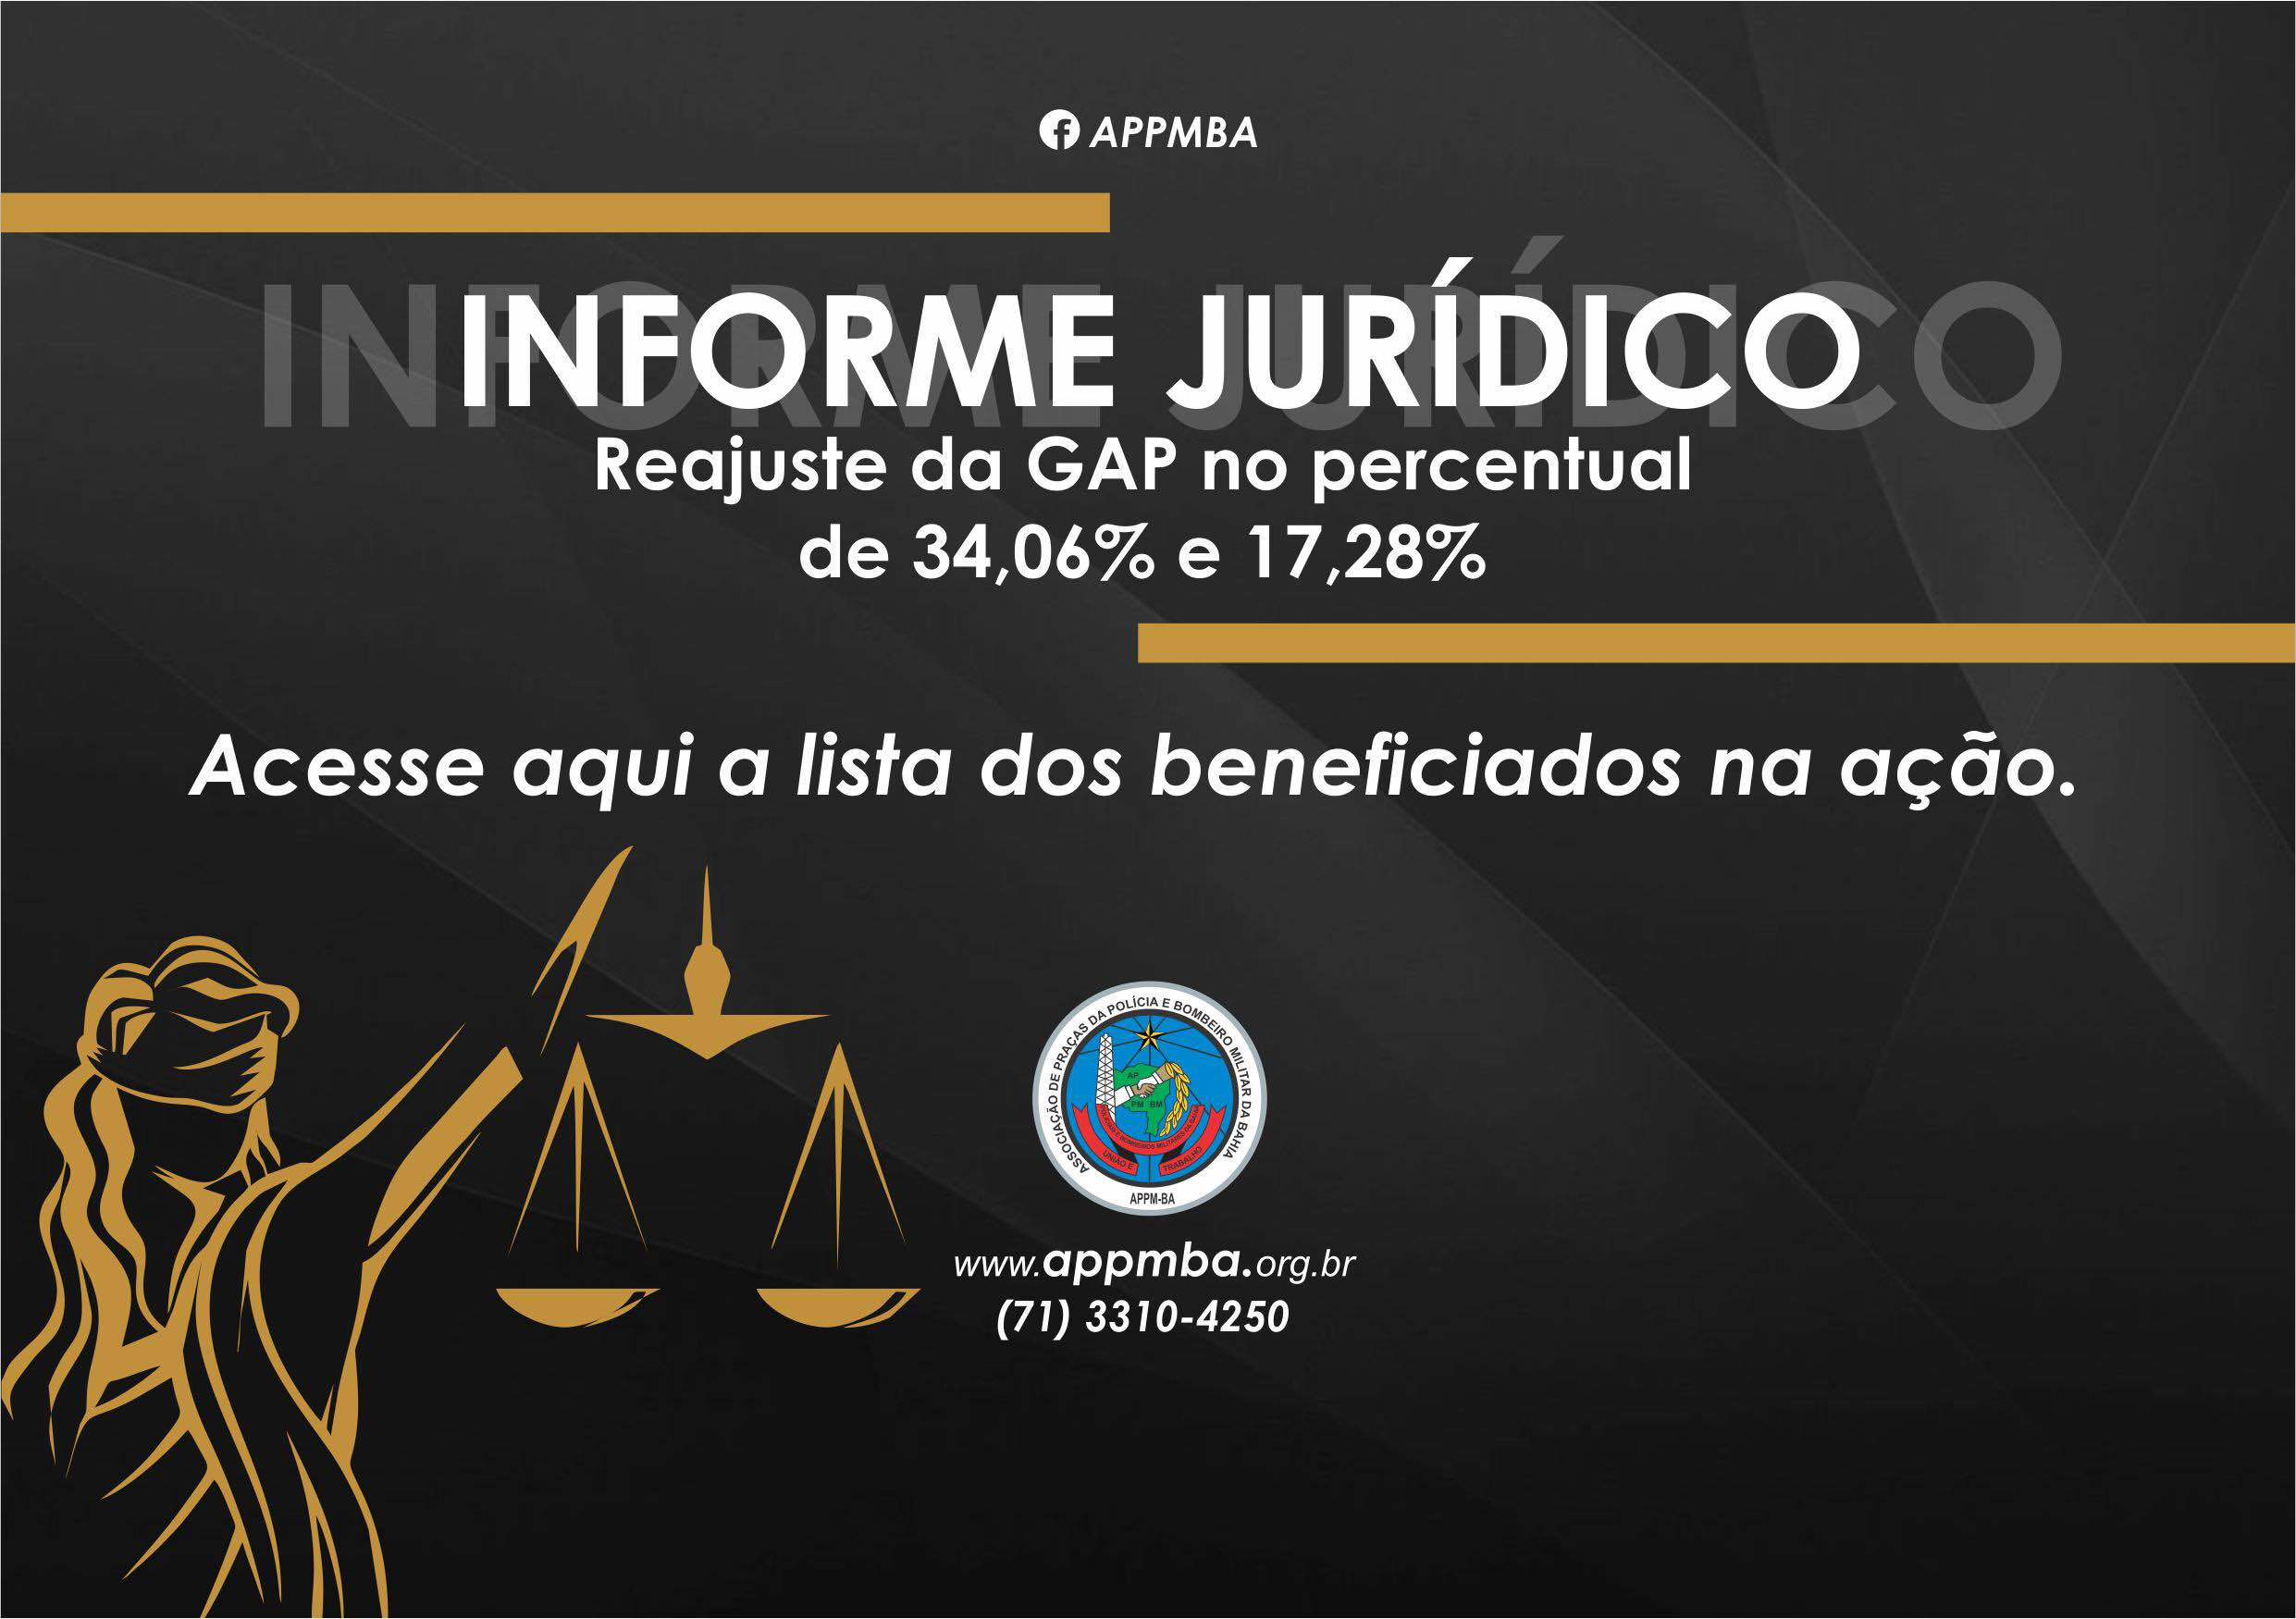 Reajuste da GAP no percentual de 34,06% e 17,28%